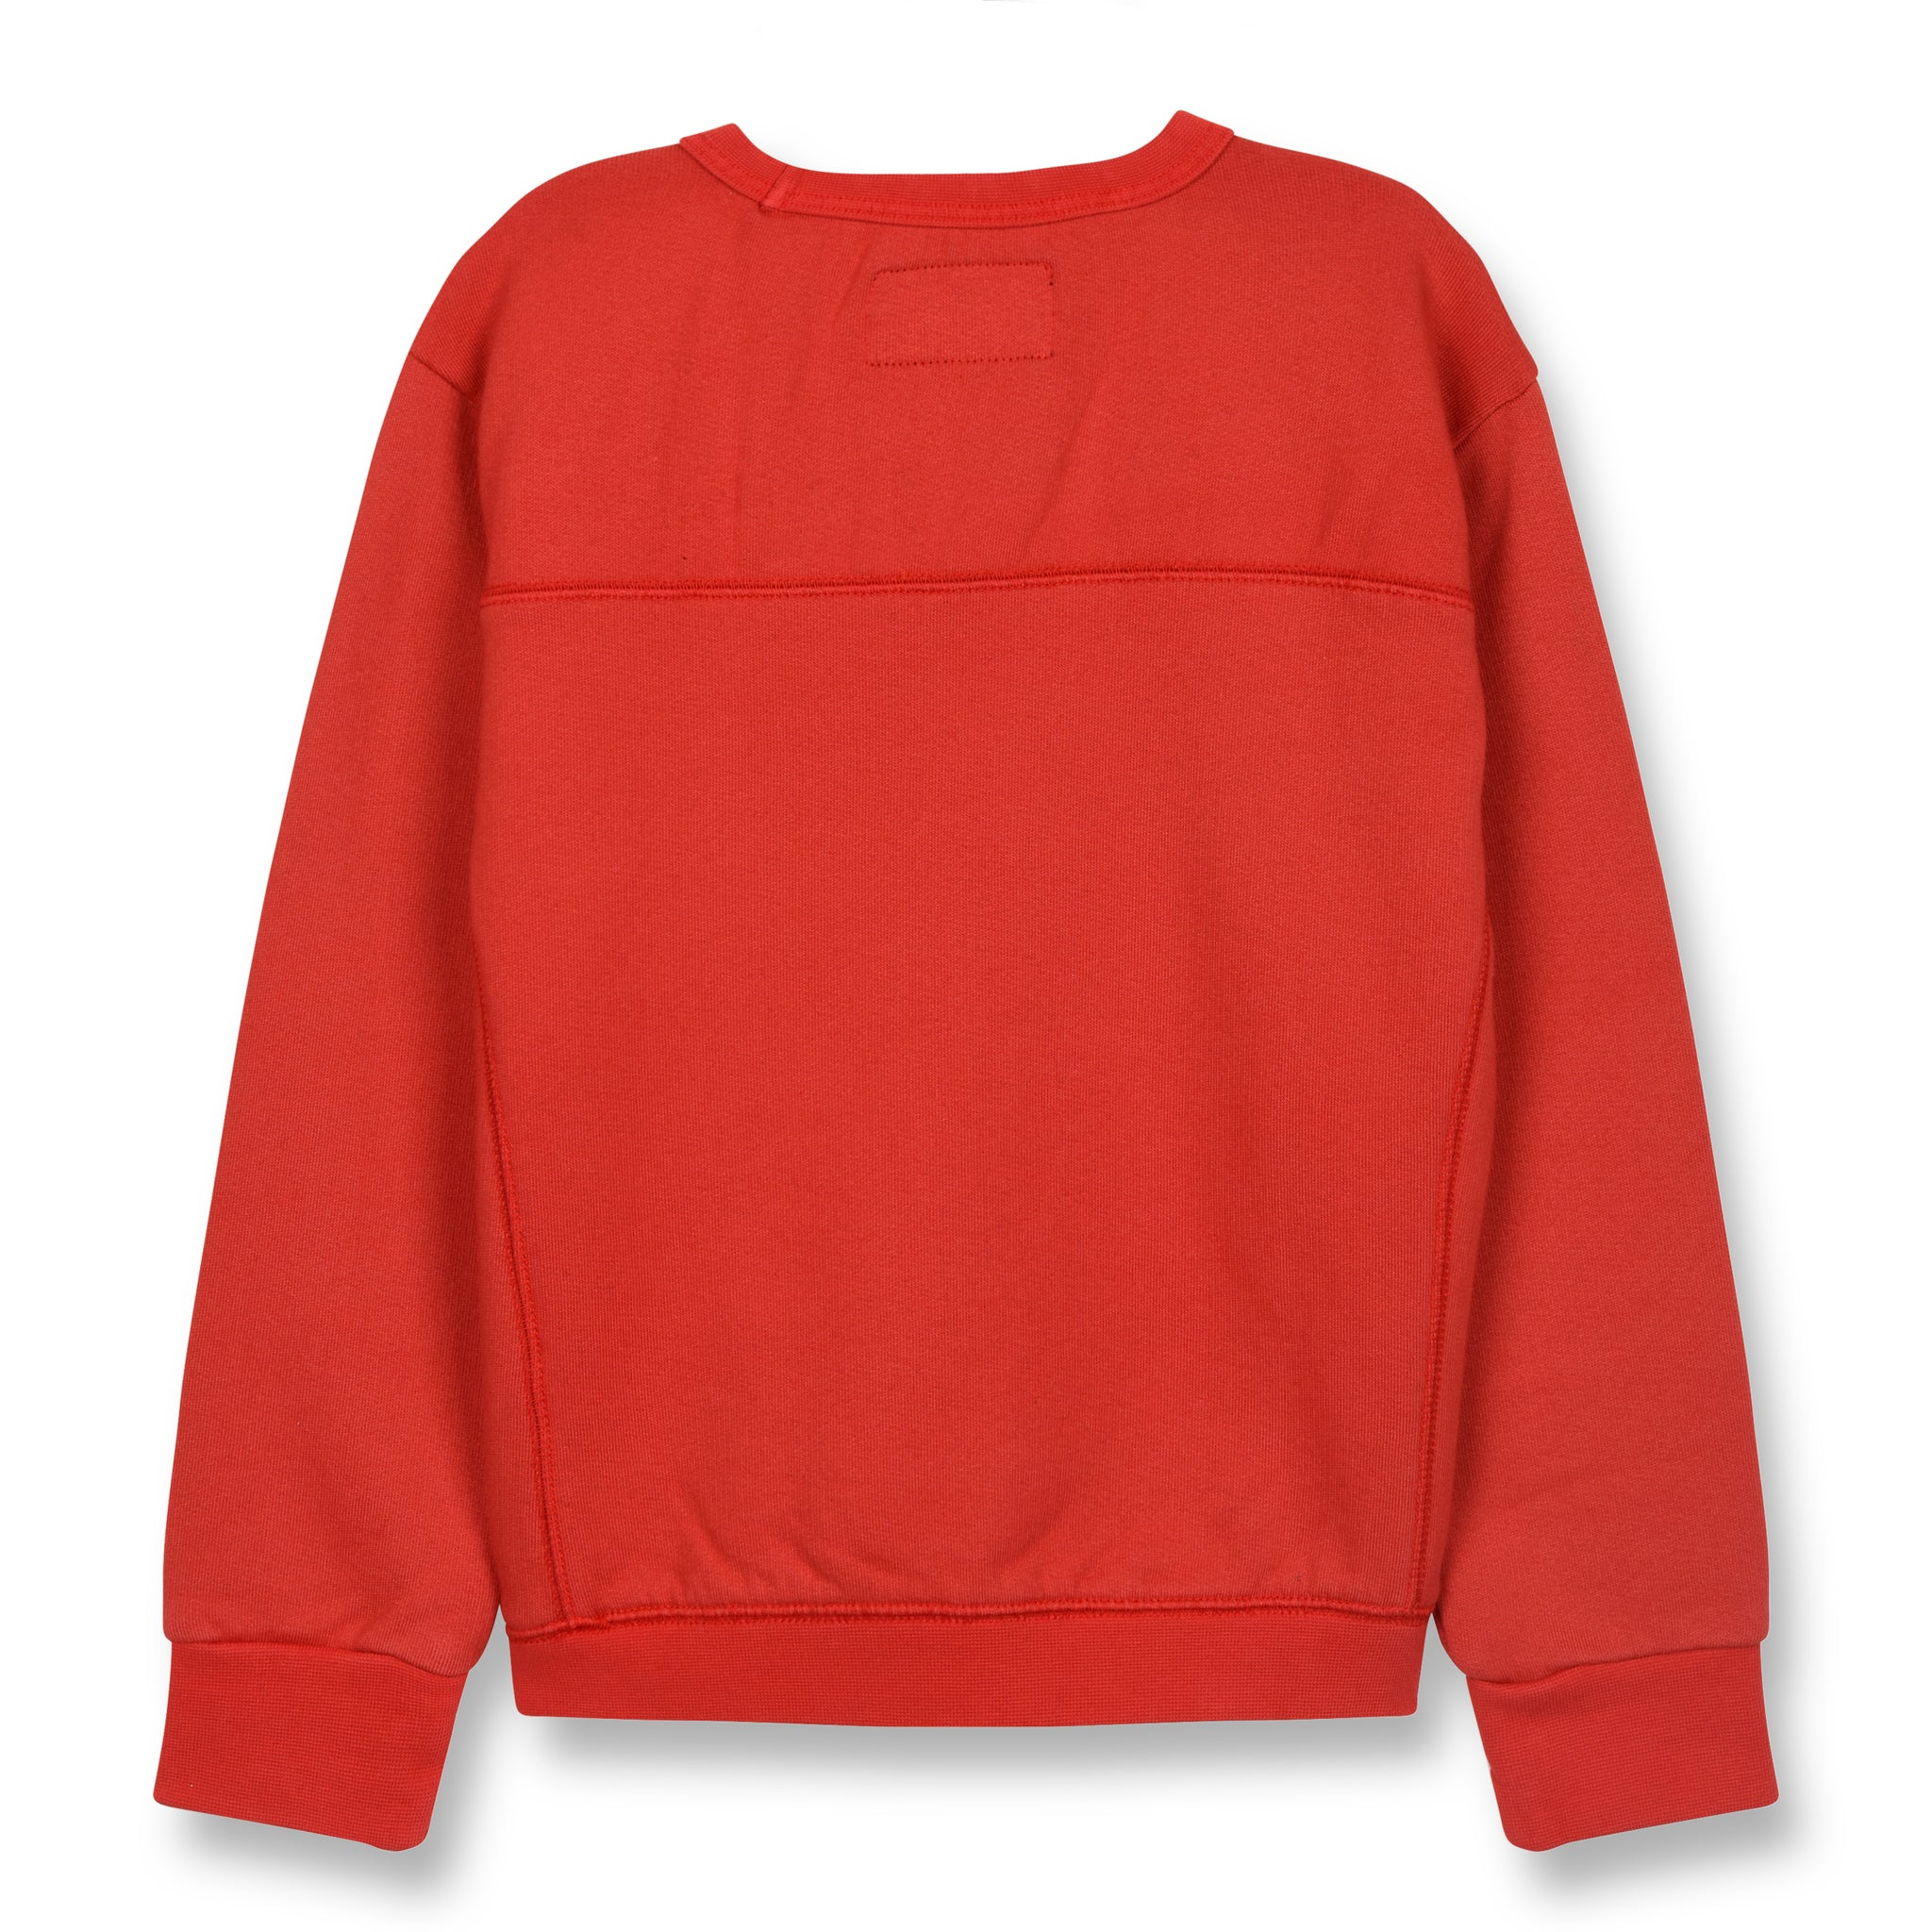 BRIAN Poppy Red - Crew Neck Sweatshirt 2